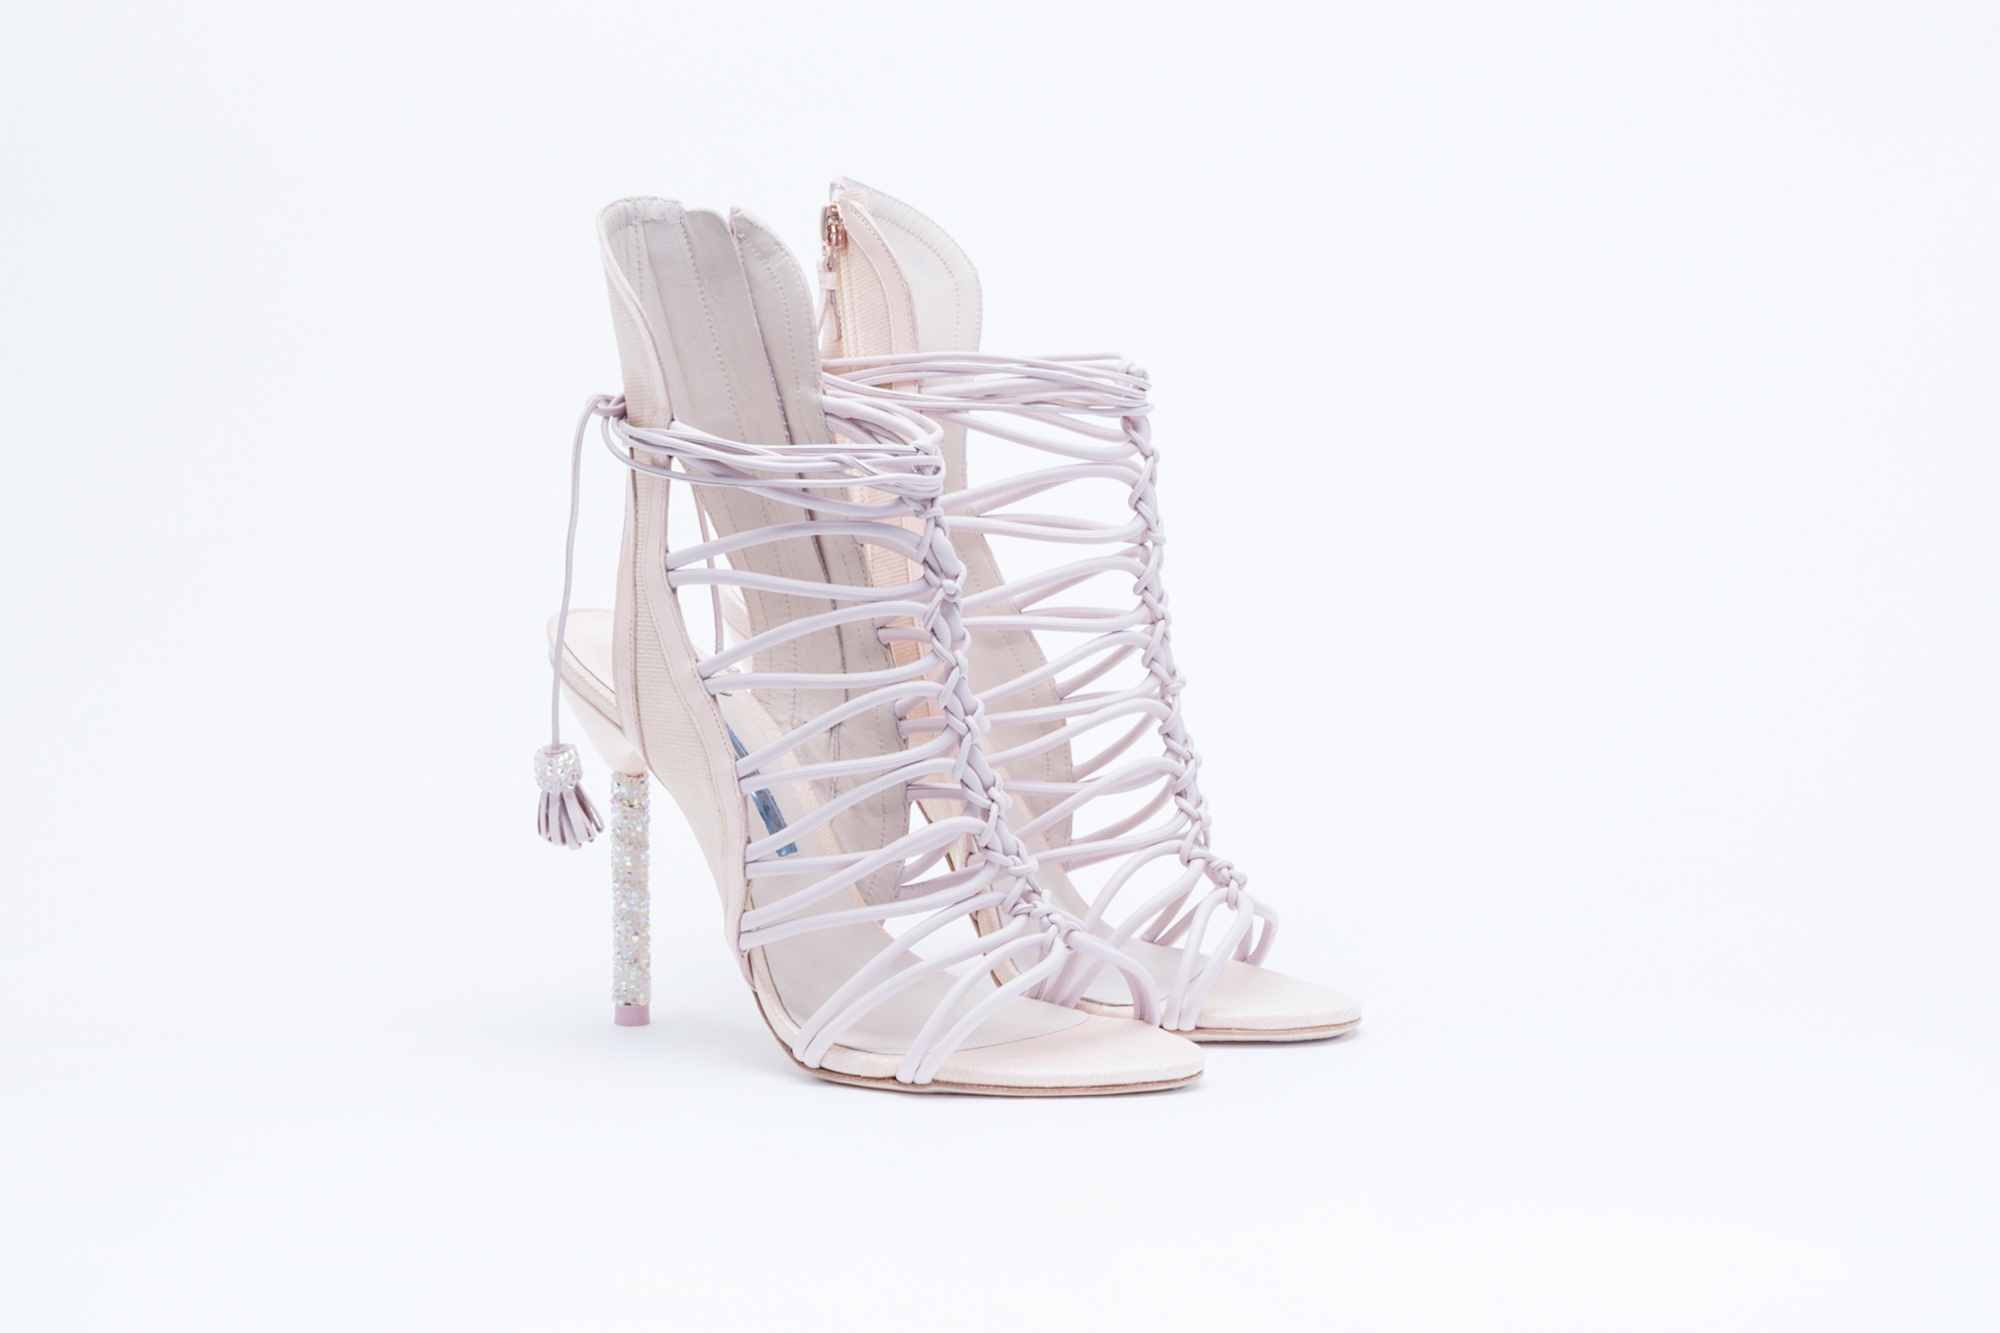 fb34e06f1ee9a Sophia Webster's new bridal shoes make us want to get married ...